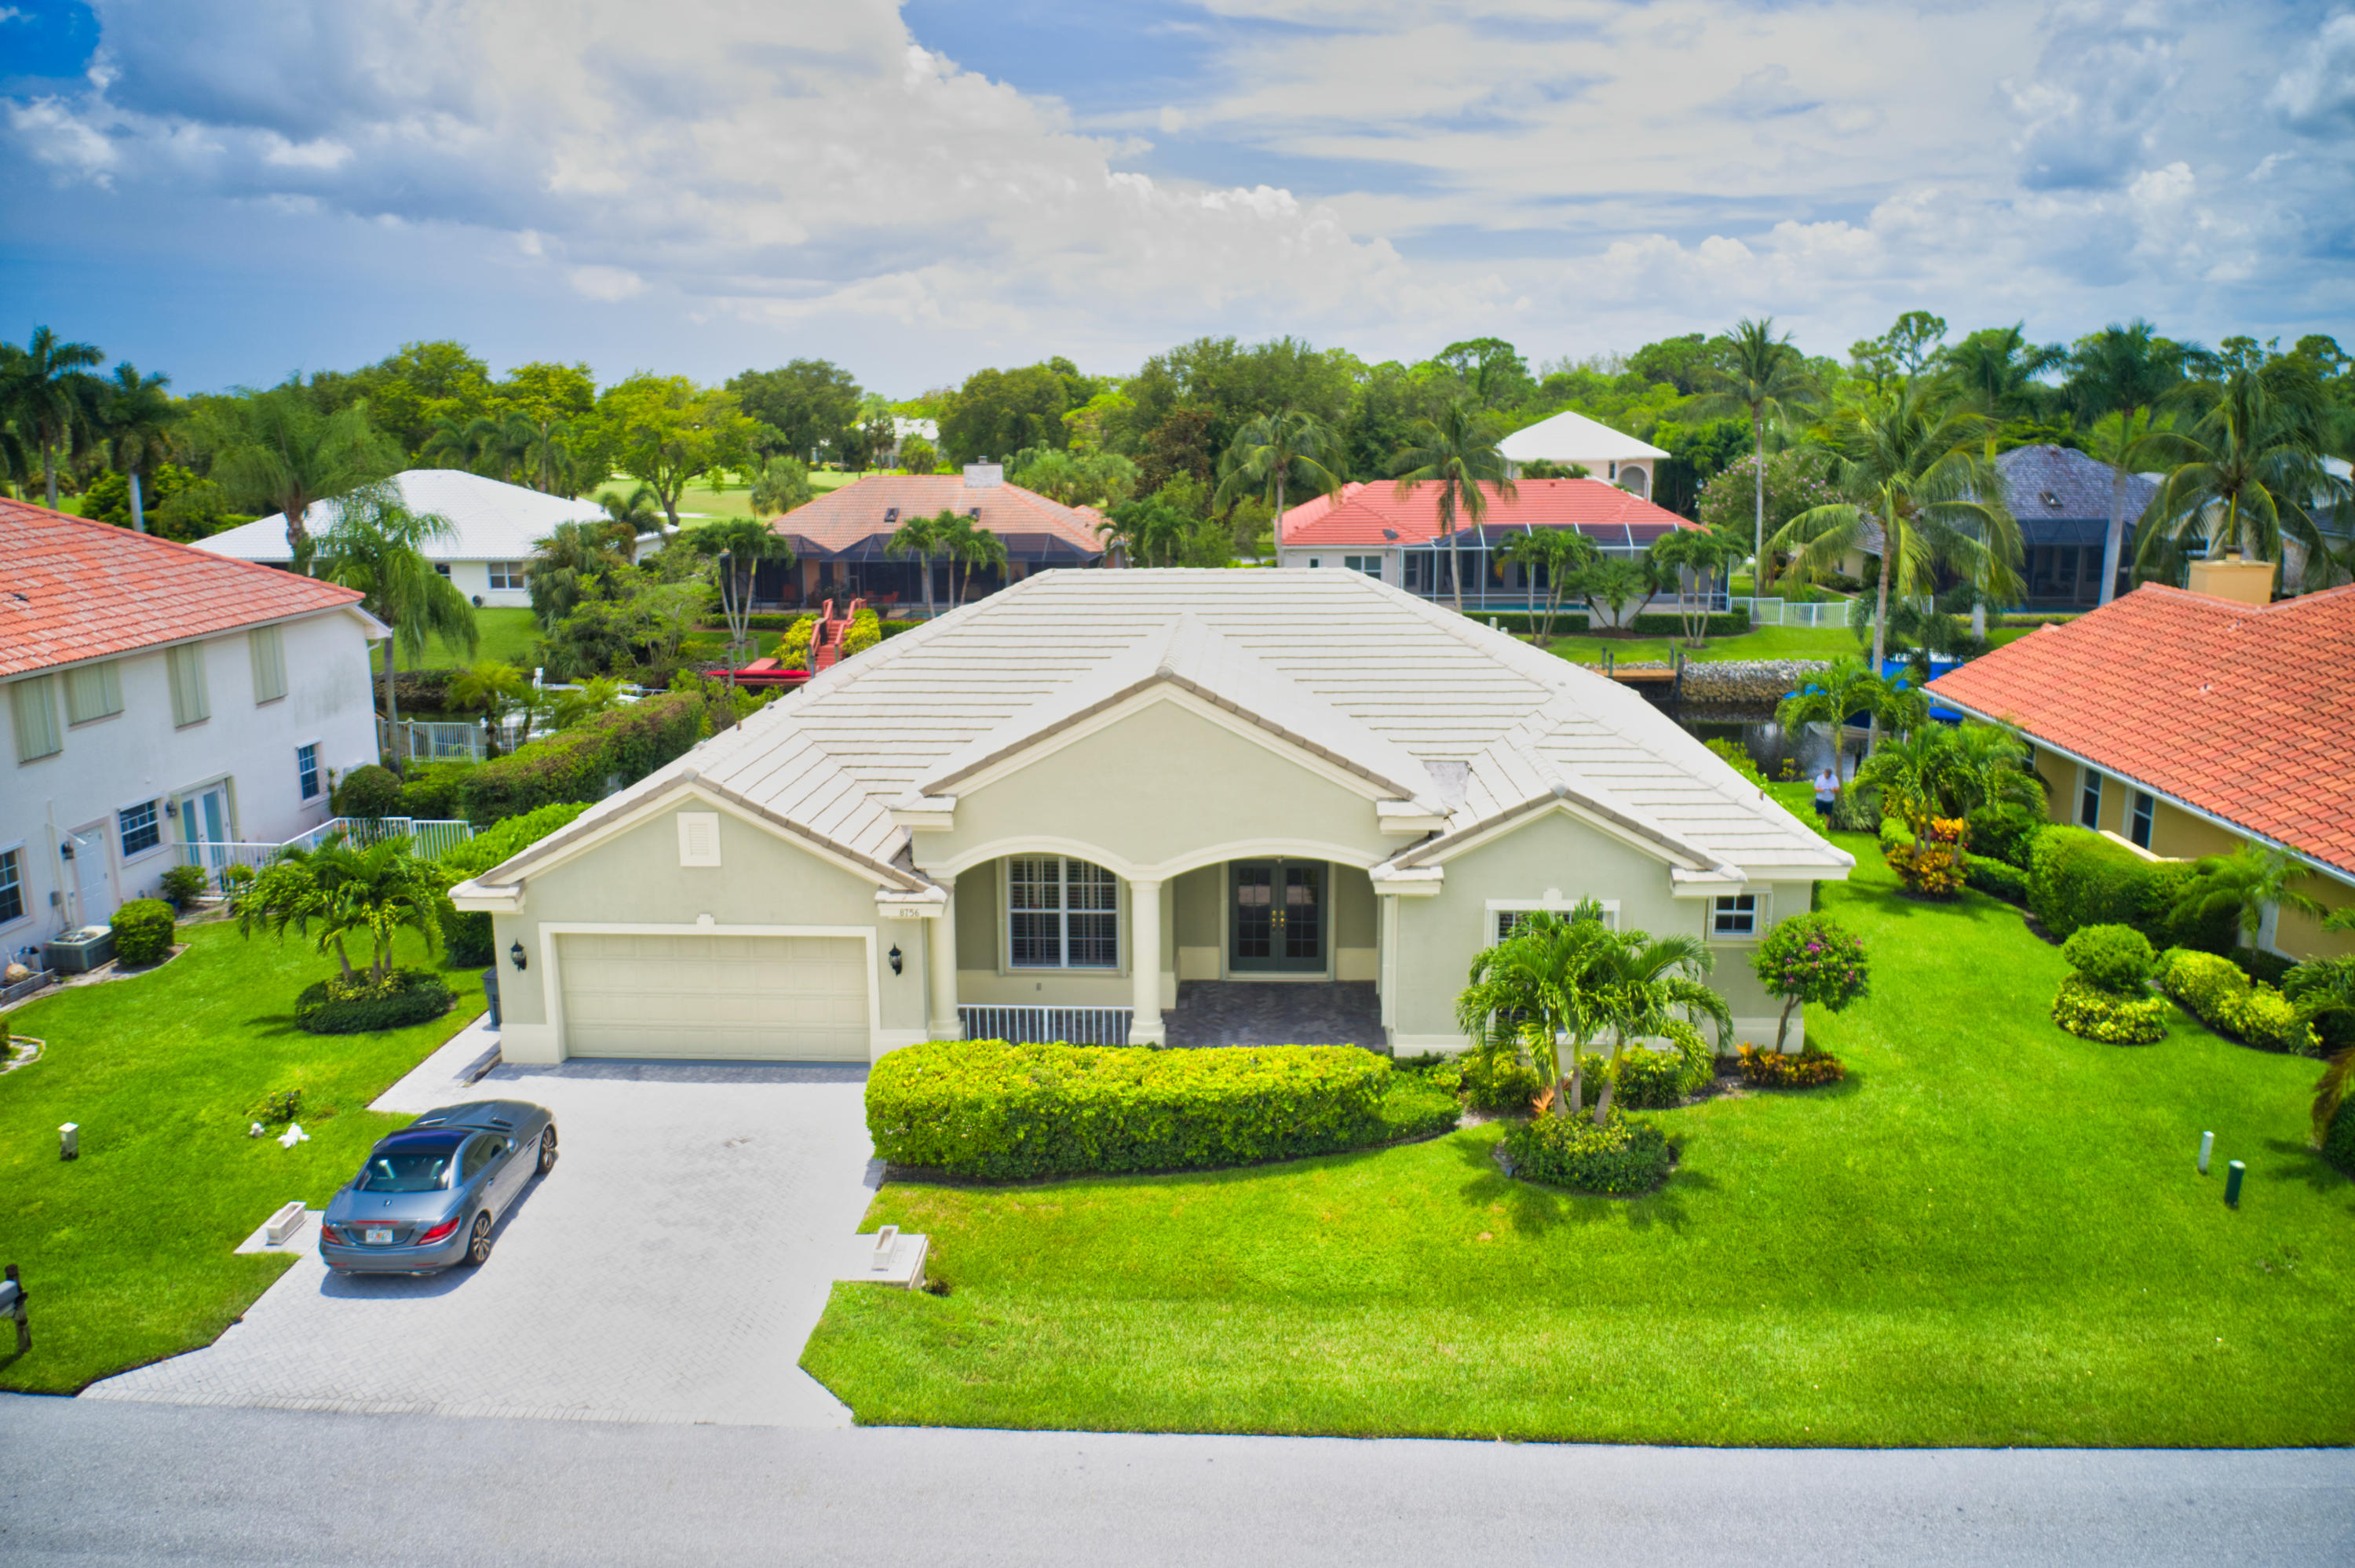 New Home for sale at 8756 Water Oak Place in Tequesta